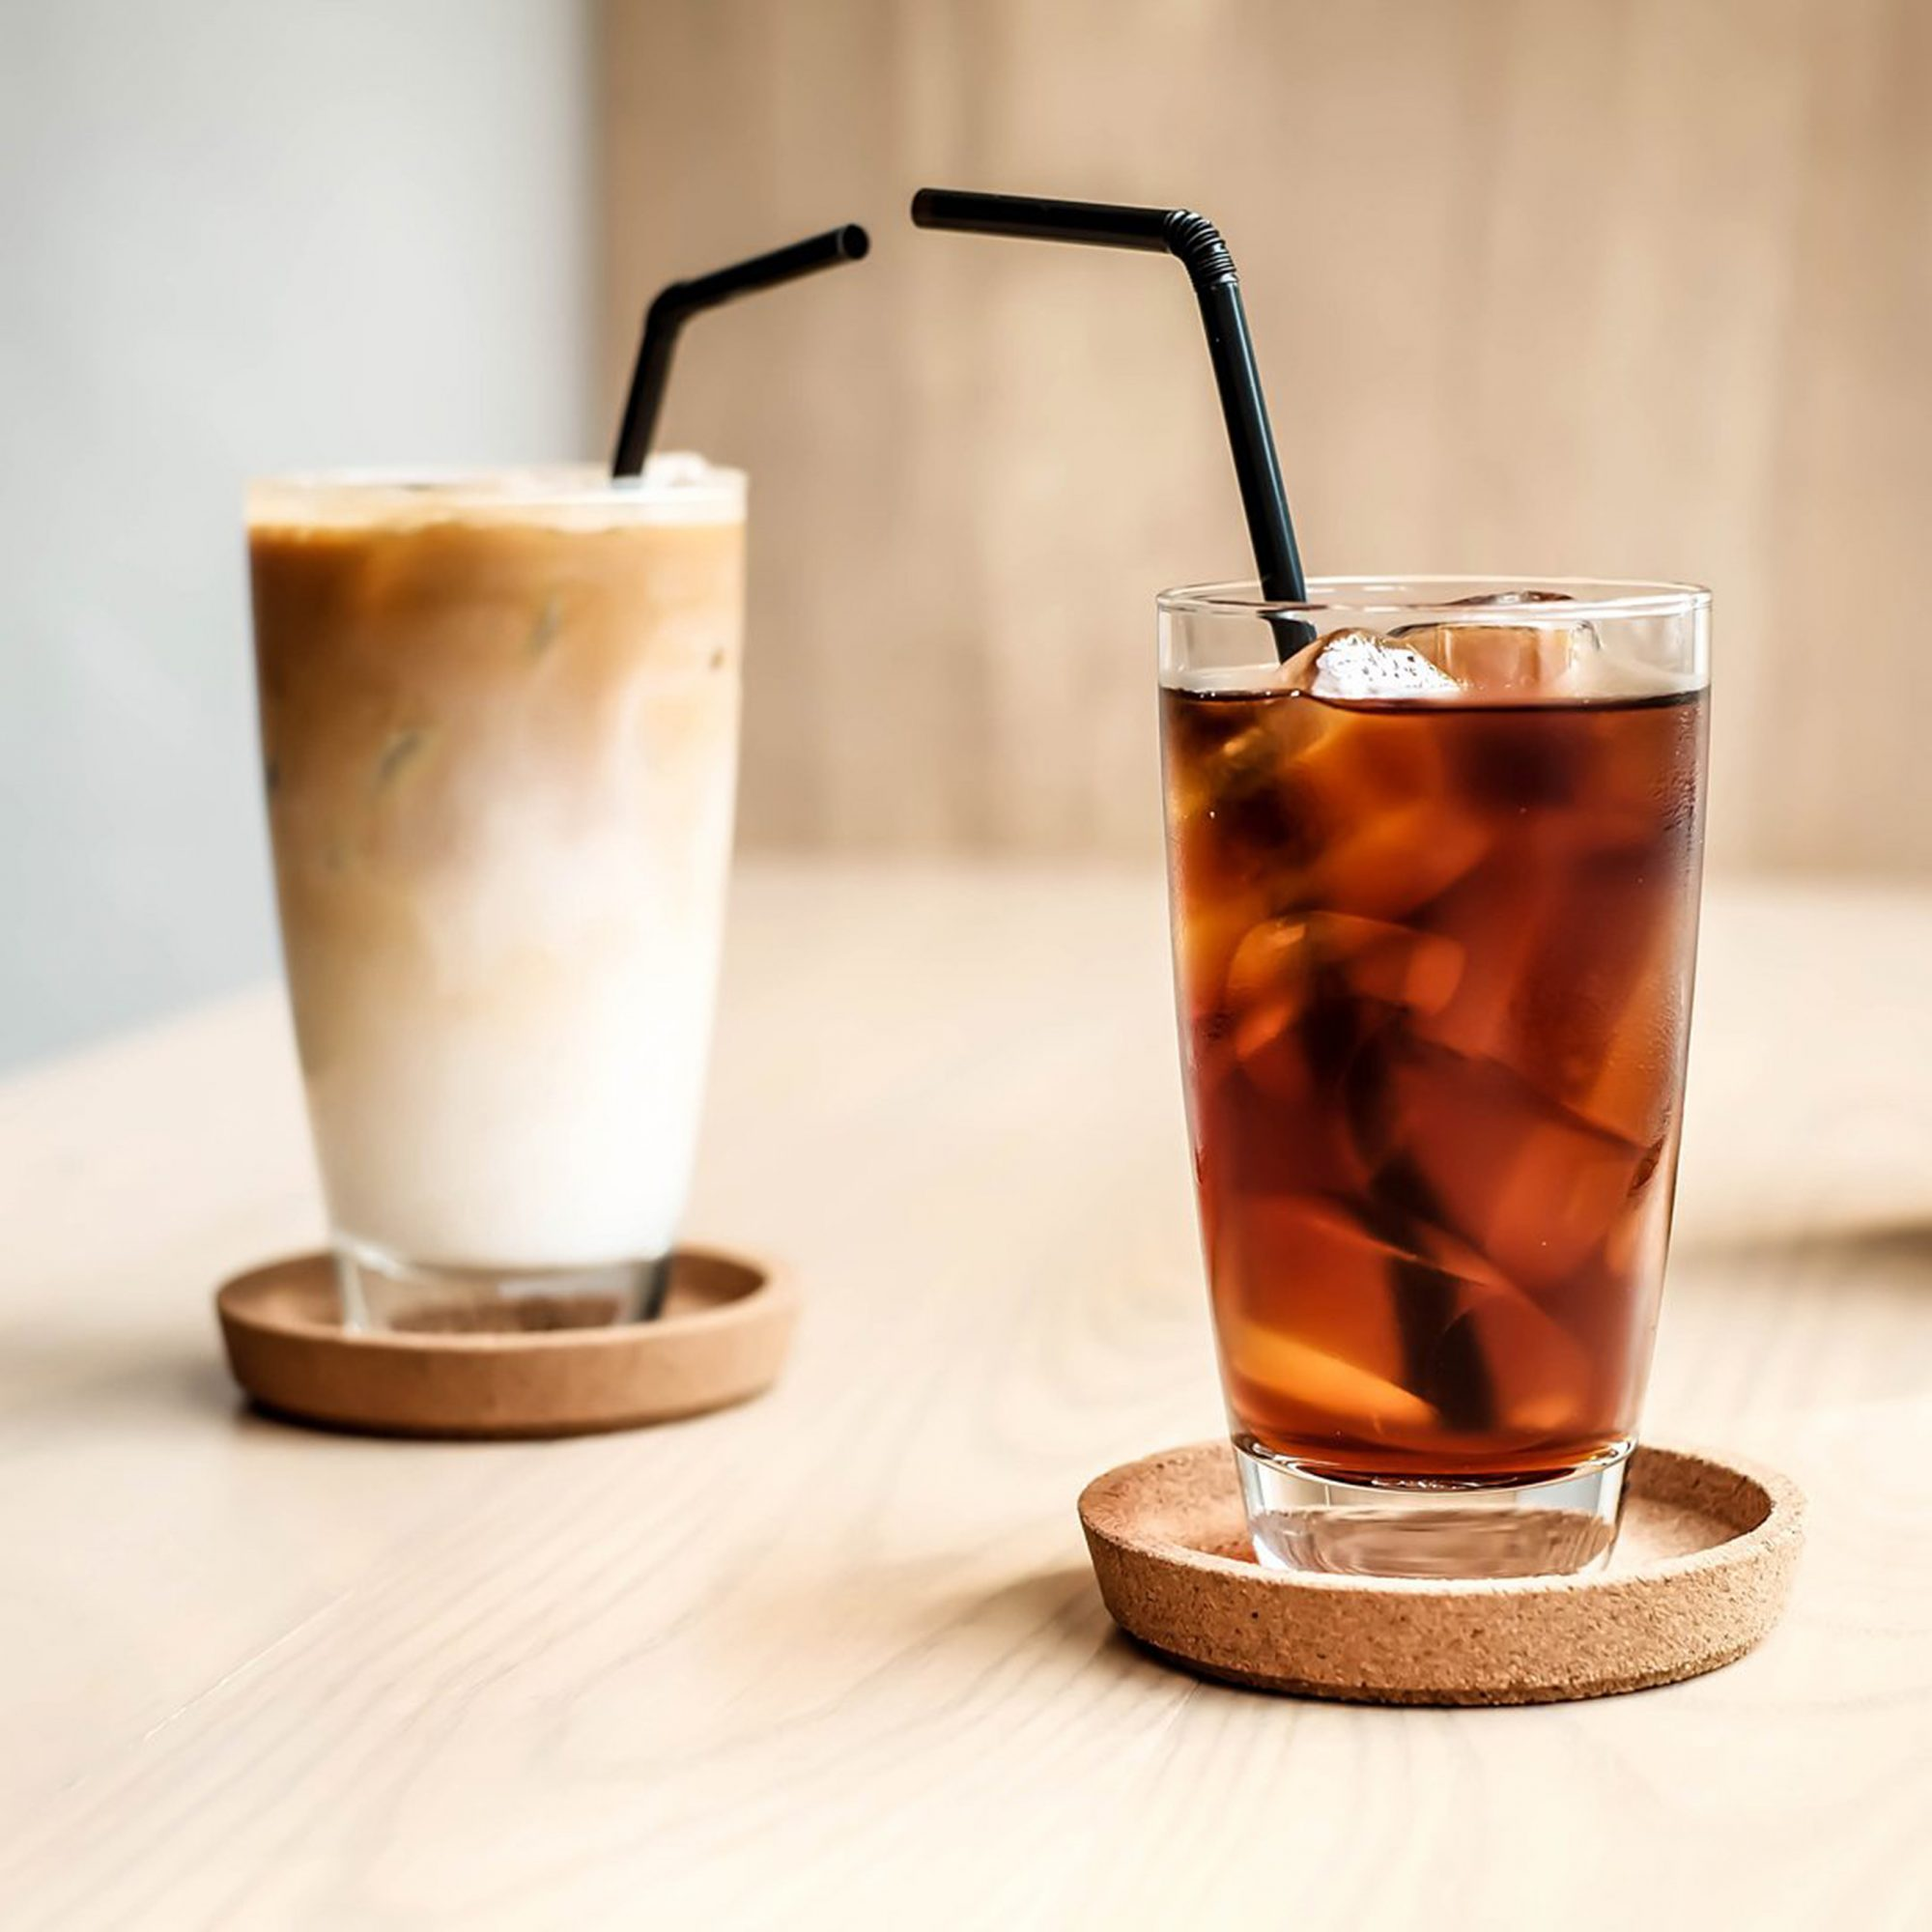 This $15 Cold Brew Coffee Is So Delicious, Amazon Shoppers Are Drinking It Black